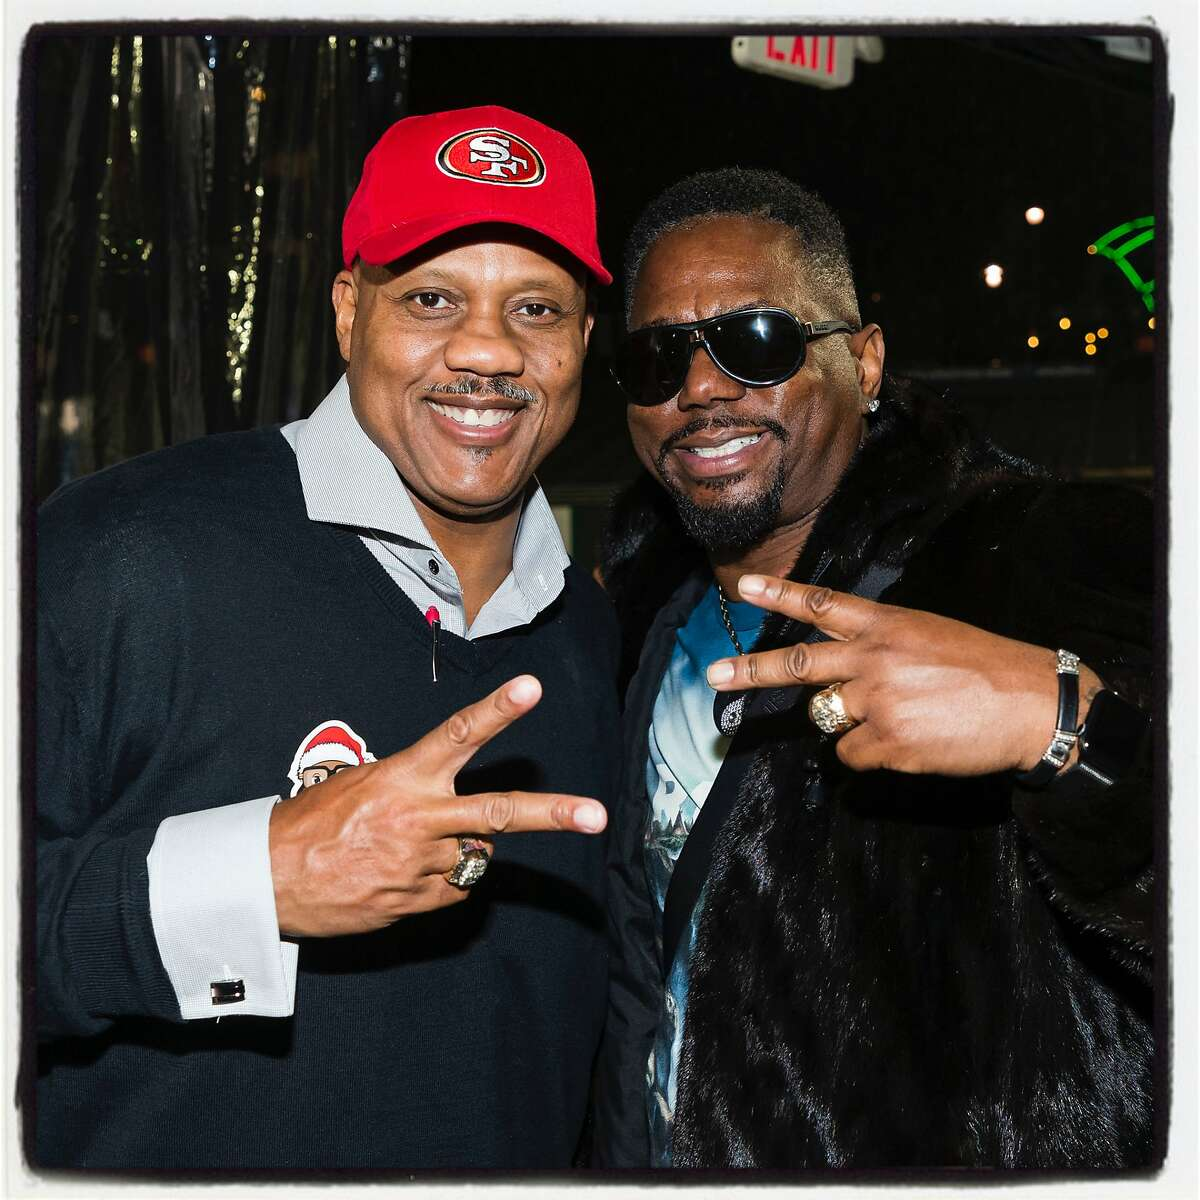 Holiday Heroes honoree Dennis Brown (left) with his former 49ers teammate Ricky Watters. Dec. 10, 2019.